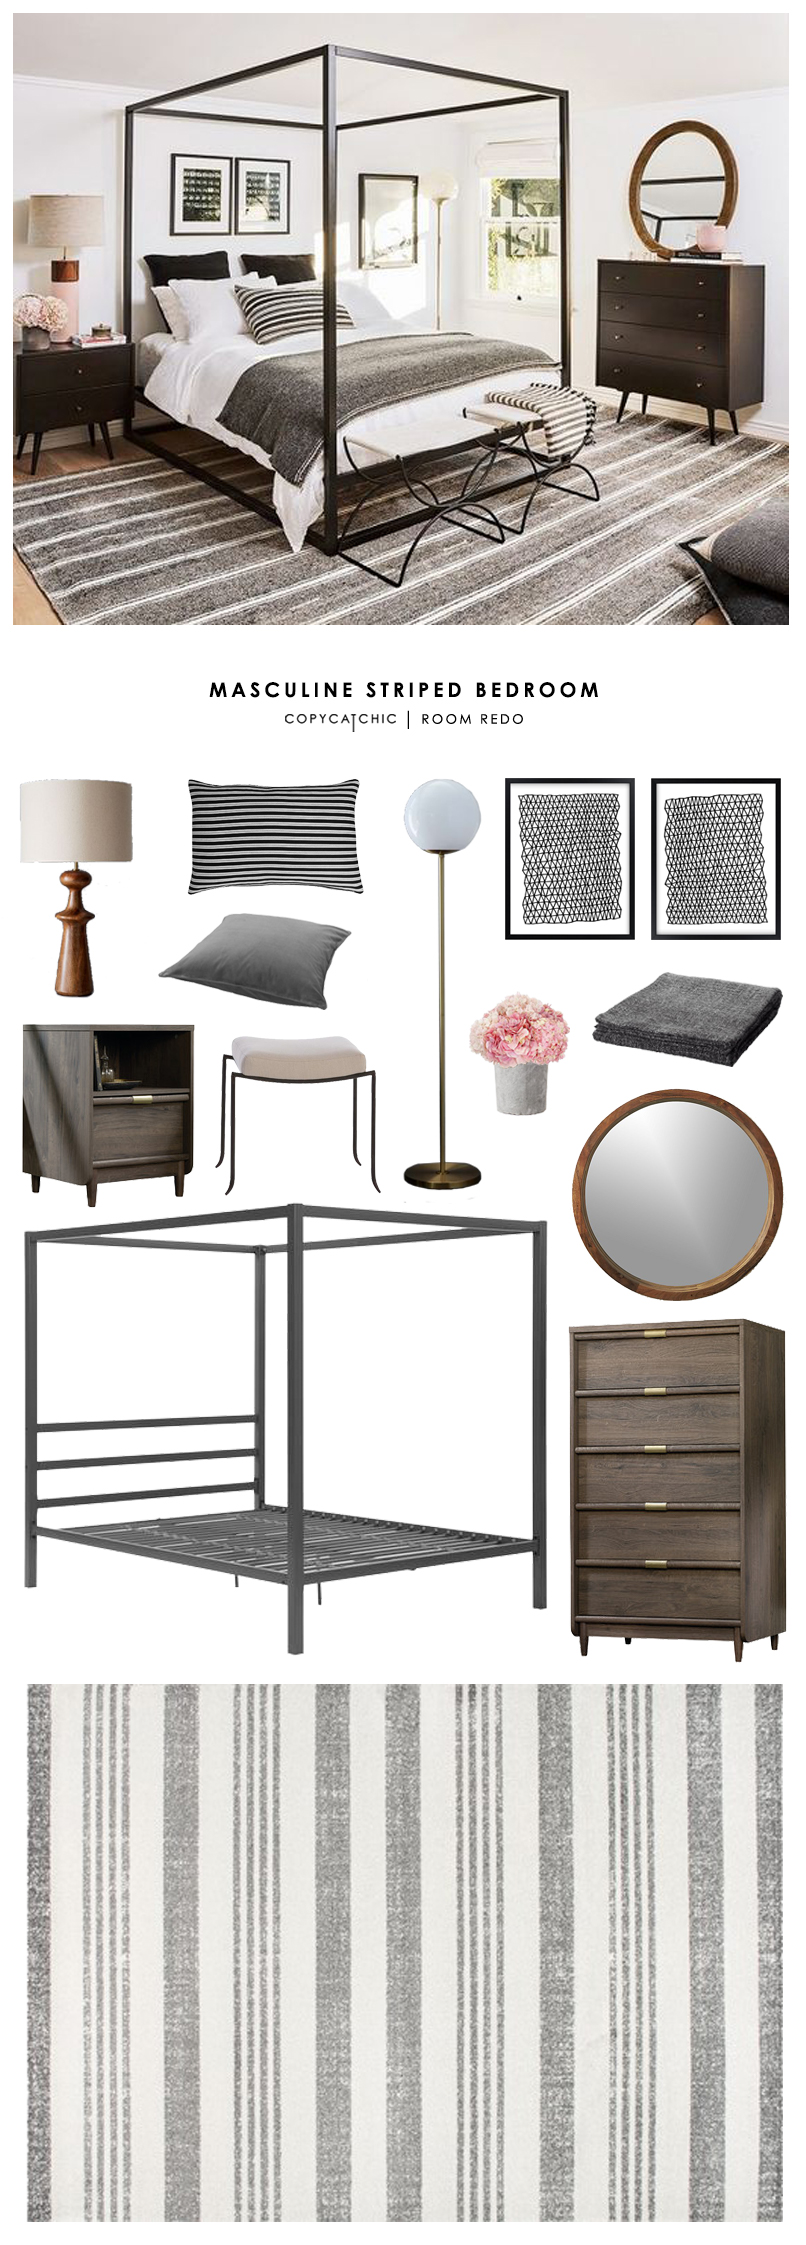 This transitional, eclectic, boho, masculine gray striped bedroom by My Domaine gets recreated for less by @copycatchic room redo looks for less budget home